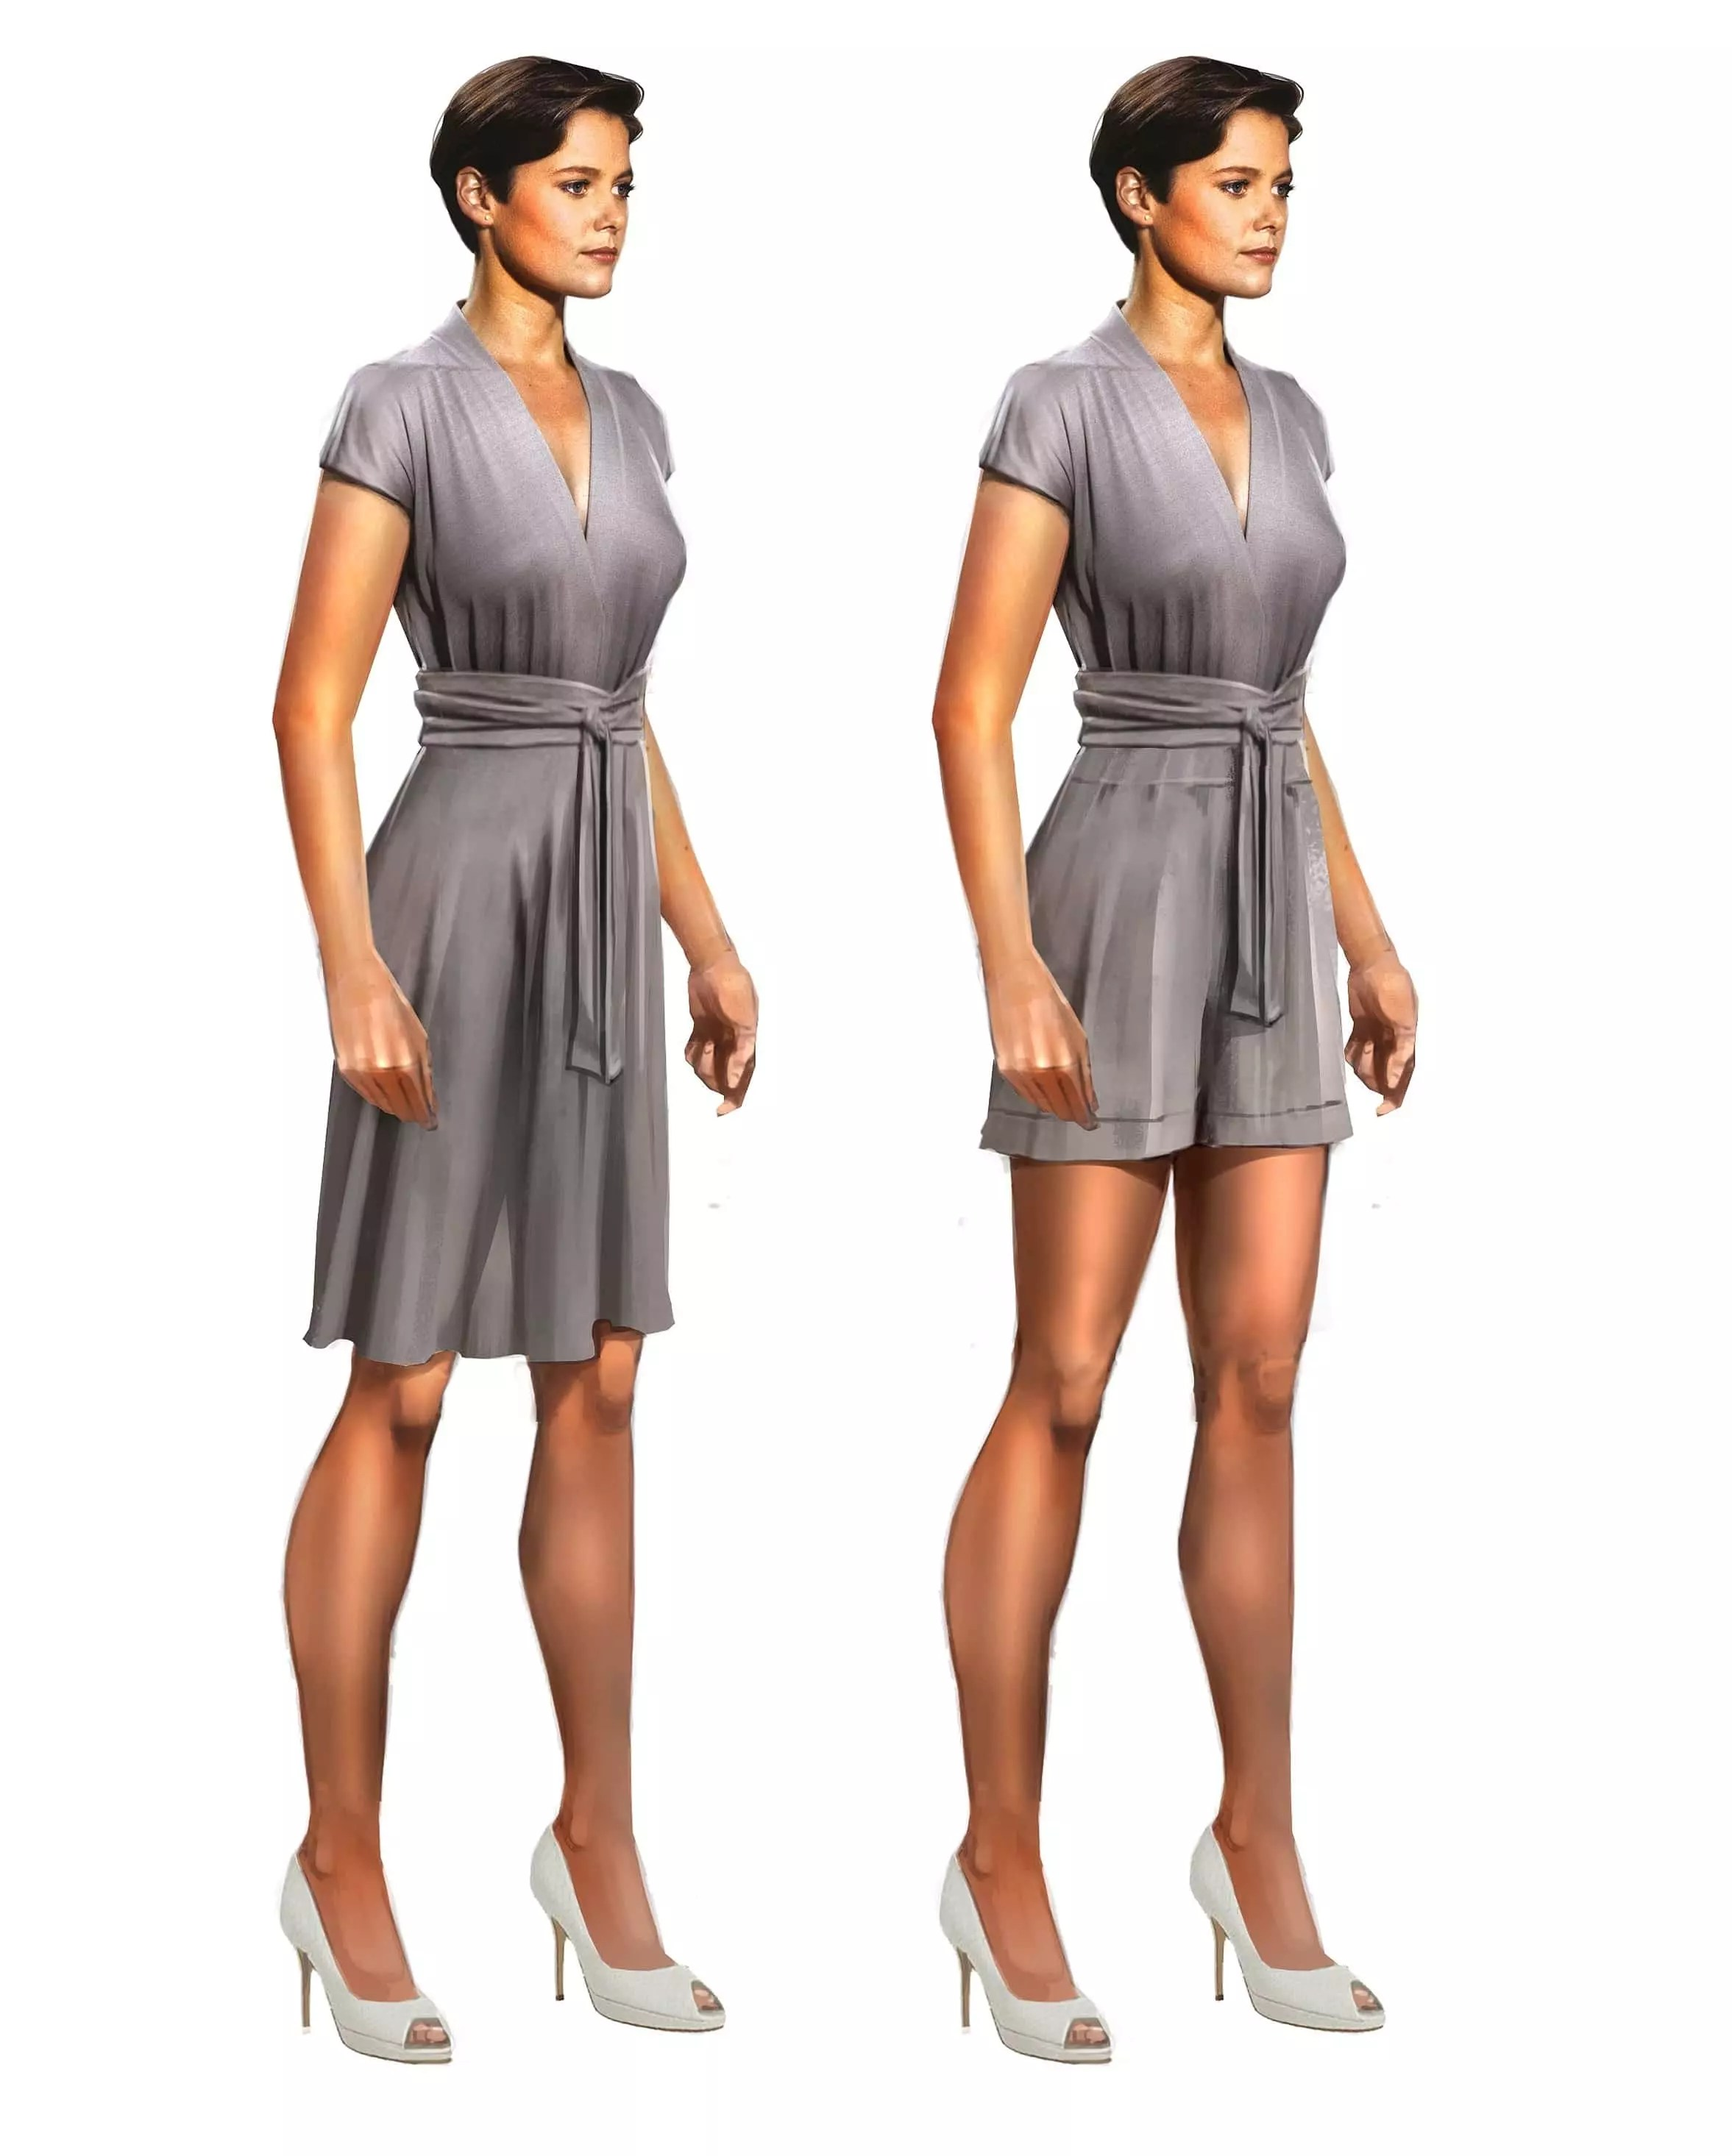 007 Legends - Pam Bouvier (Licence to Kill)